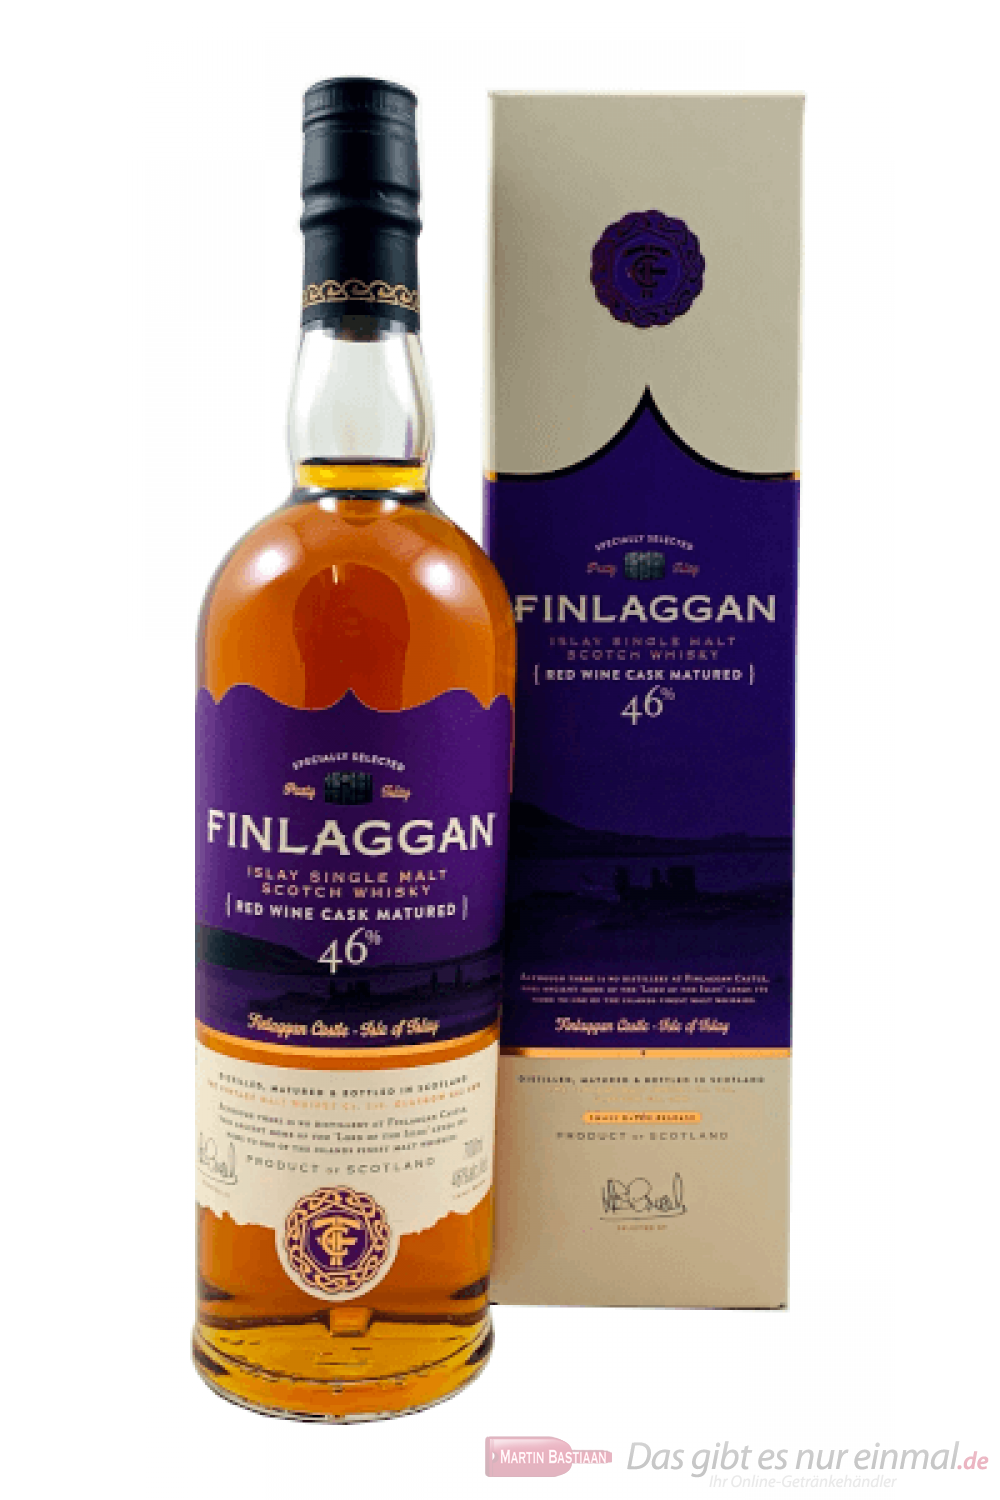 Finlaggan Red Wine Cask Matured Single Malt Scotch Whisky 0,7l